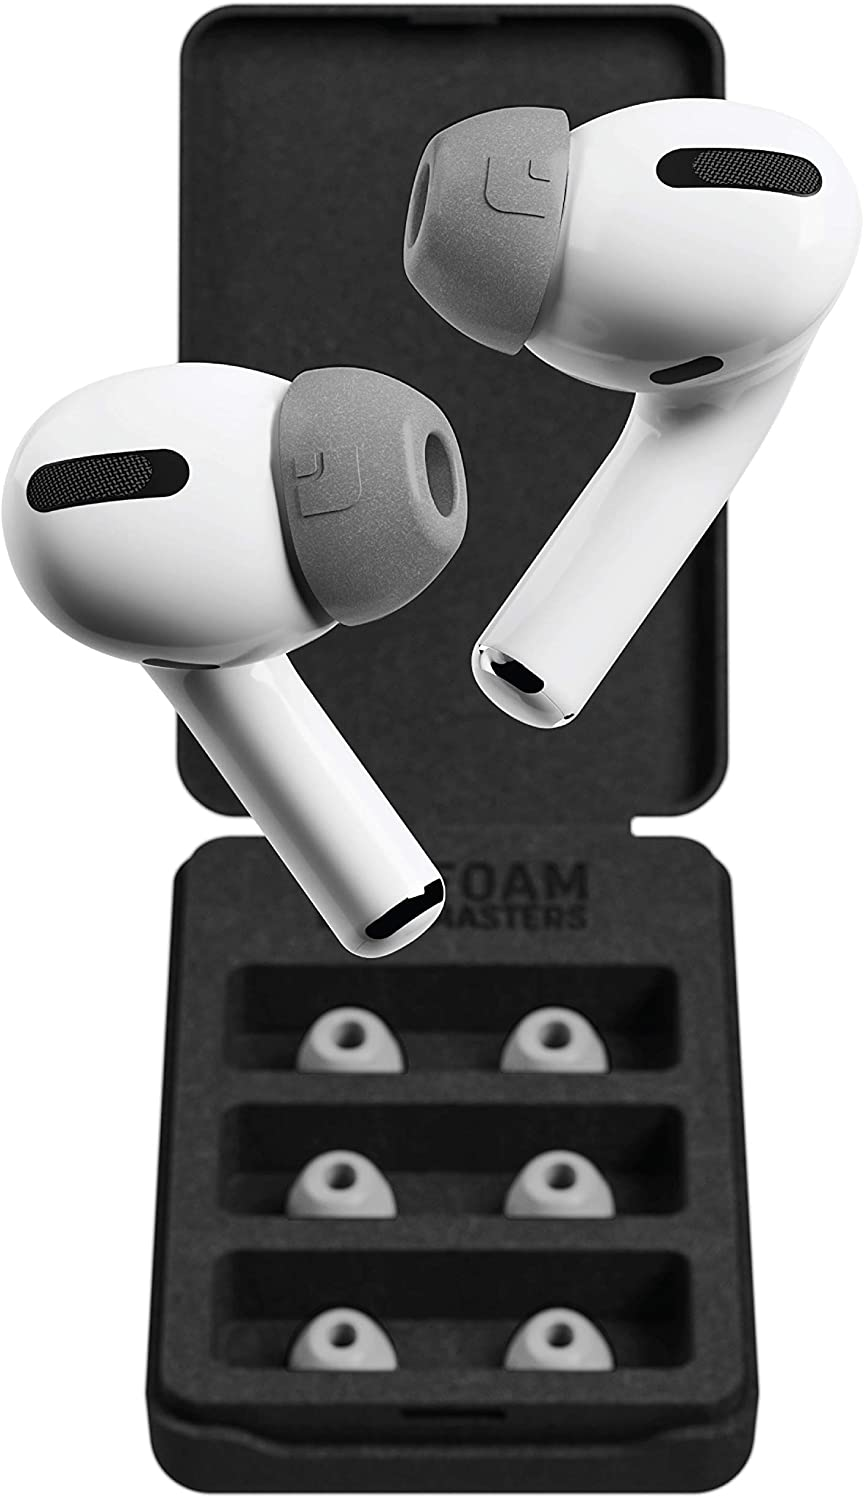 Foam Masters Memory Foam Ear Tips for AirPods Pro - 3 Pairs | Version 4.0 - Black Magic | Comfortable | Secure | Better Noise Cancellation | Newest 2021 Replacement Buds (Small, Gray)